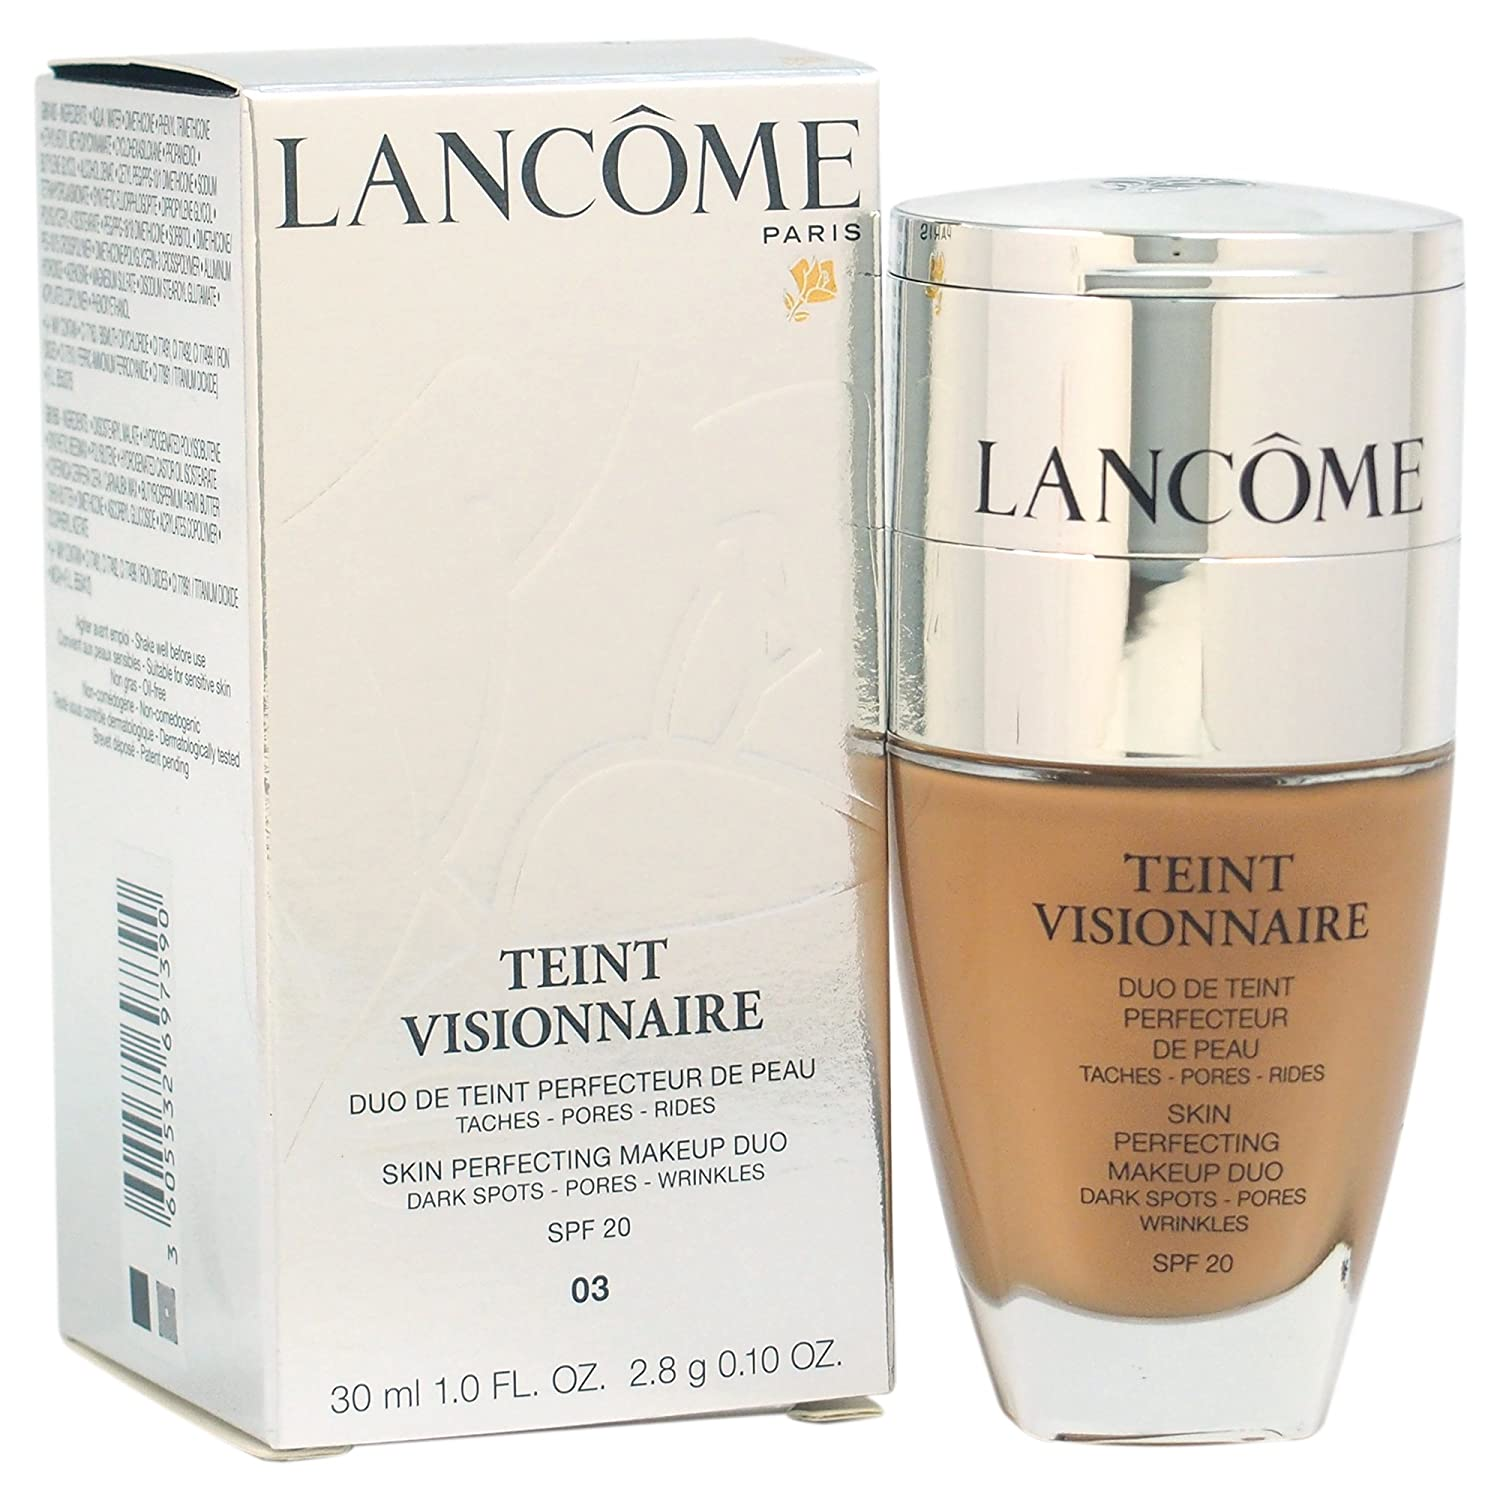 Lancome Teint Visionnaire Skin Perfecting Makeup Duo 03 Beige Diaphane for Women, 1 Ounce